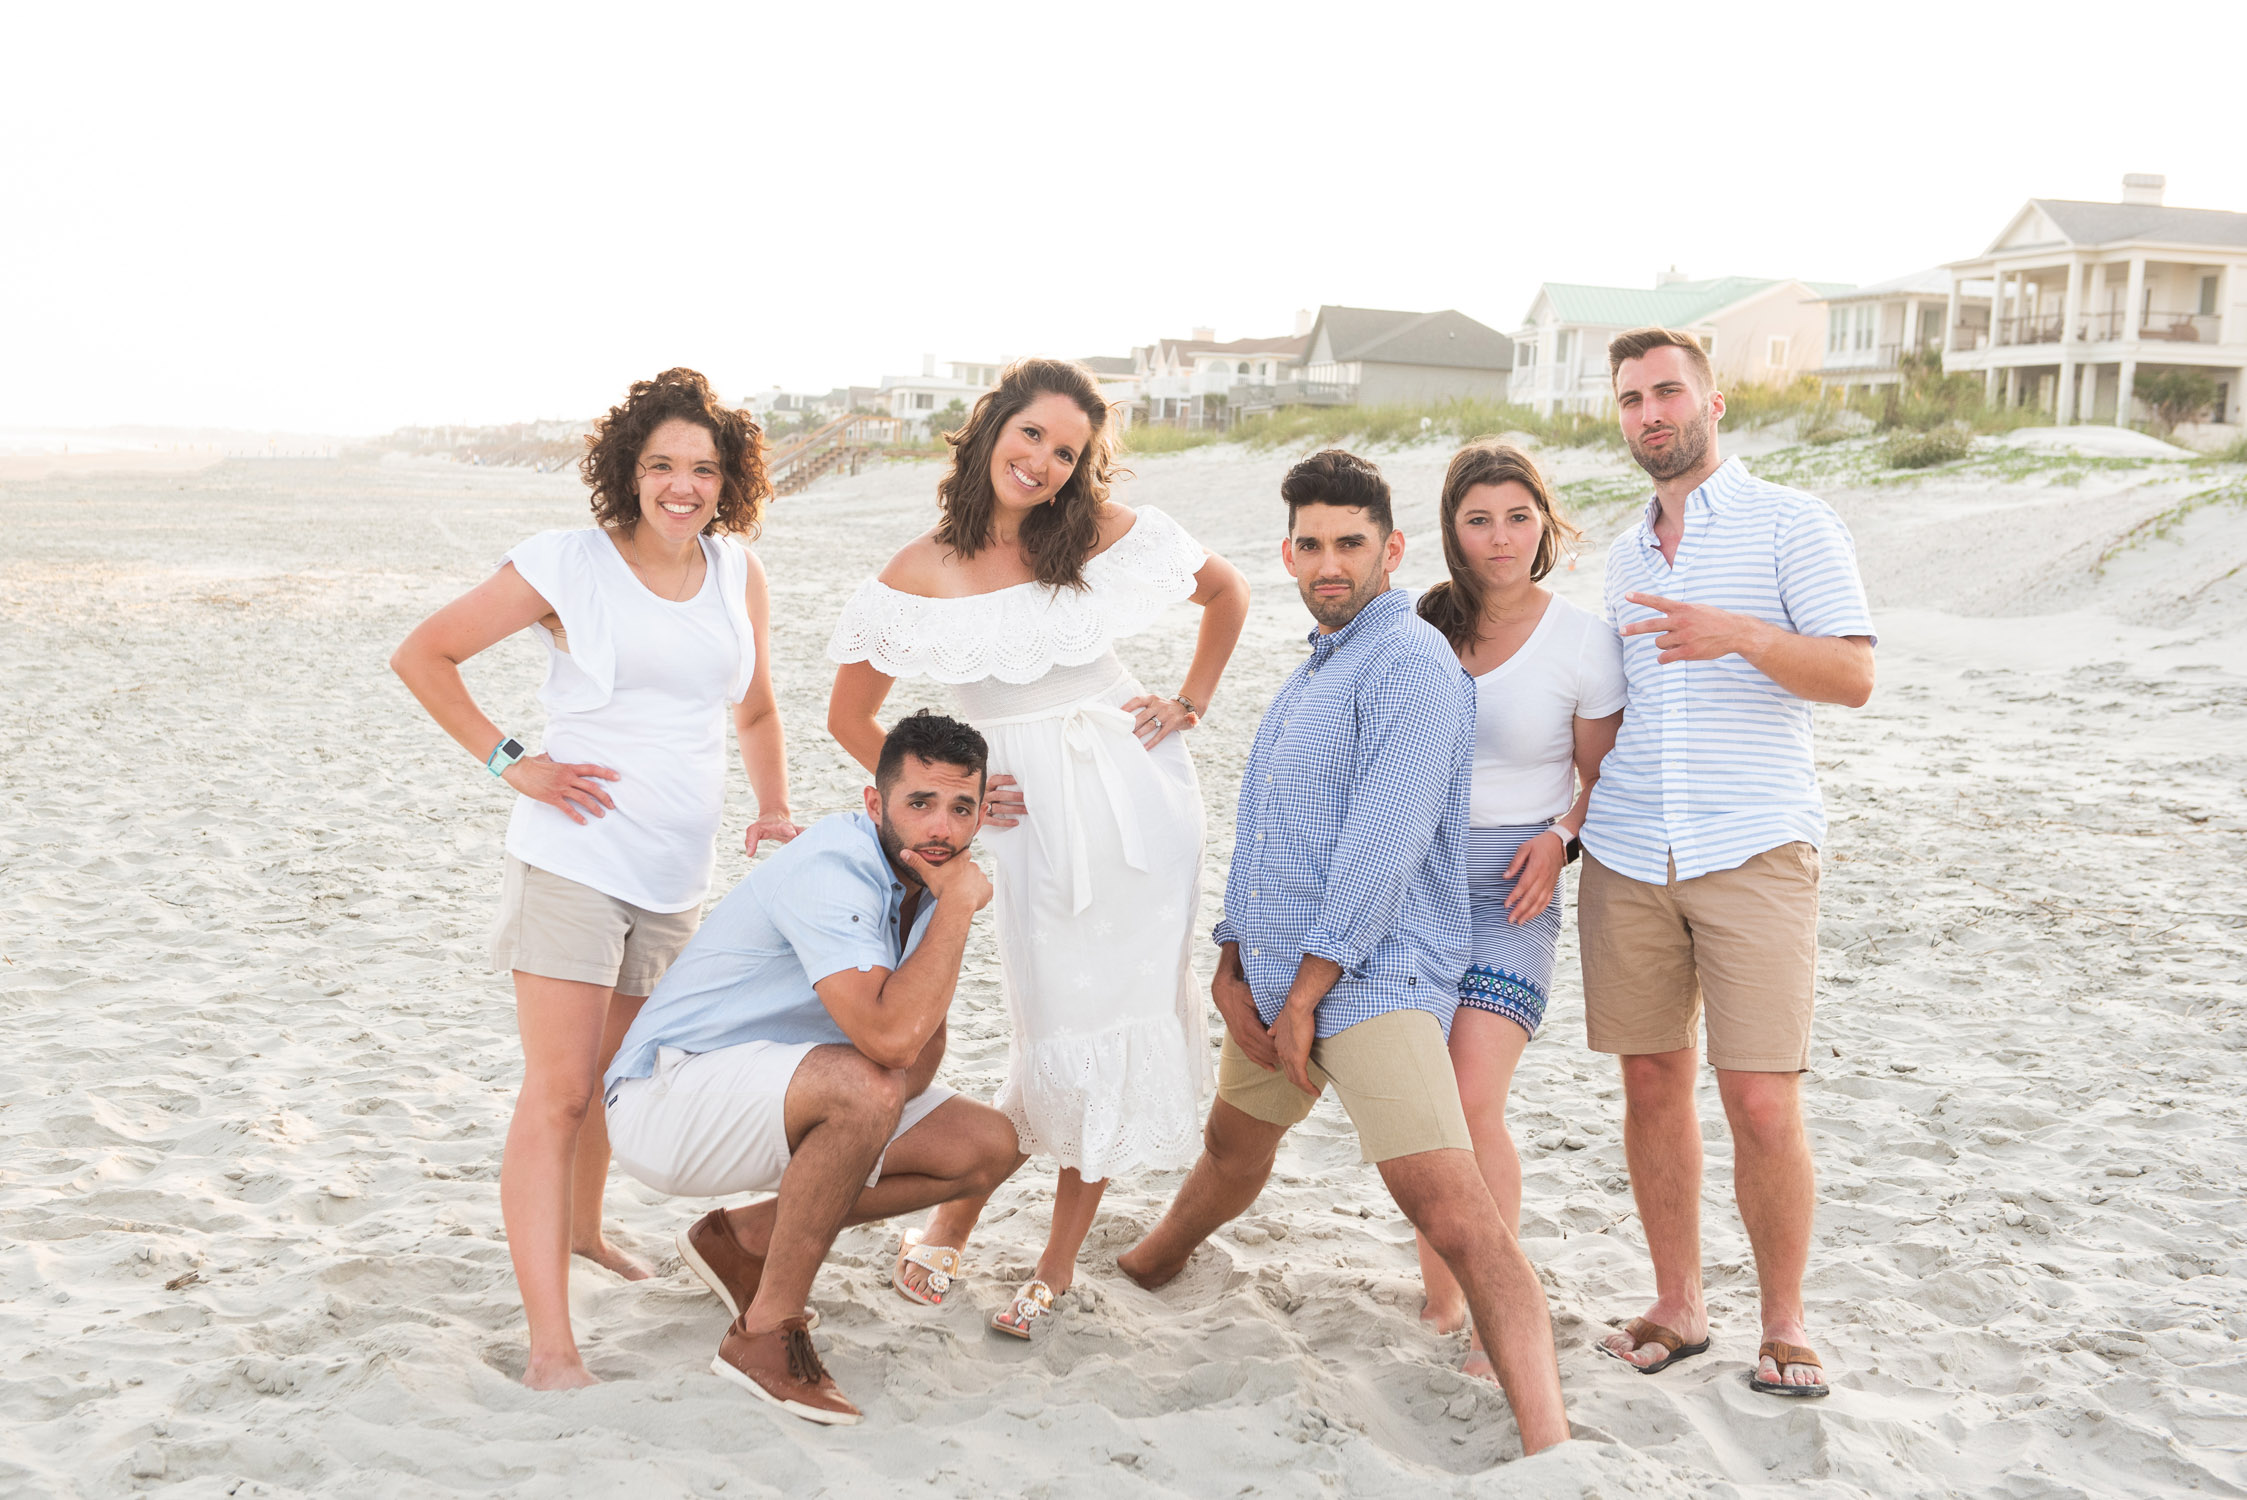 IOP family photographer Reese Moore